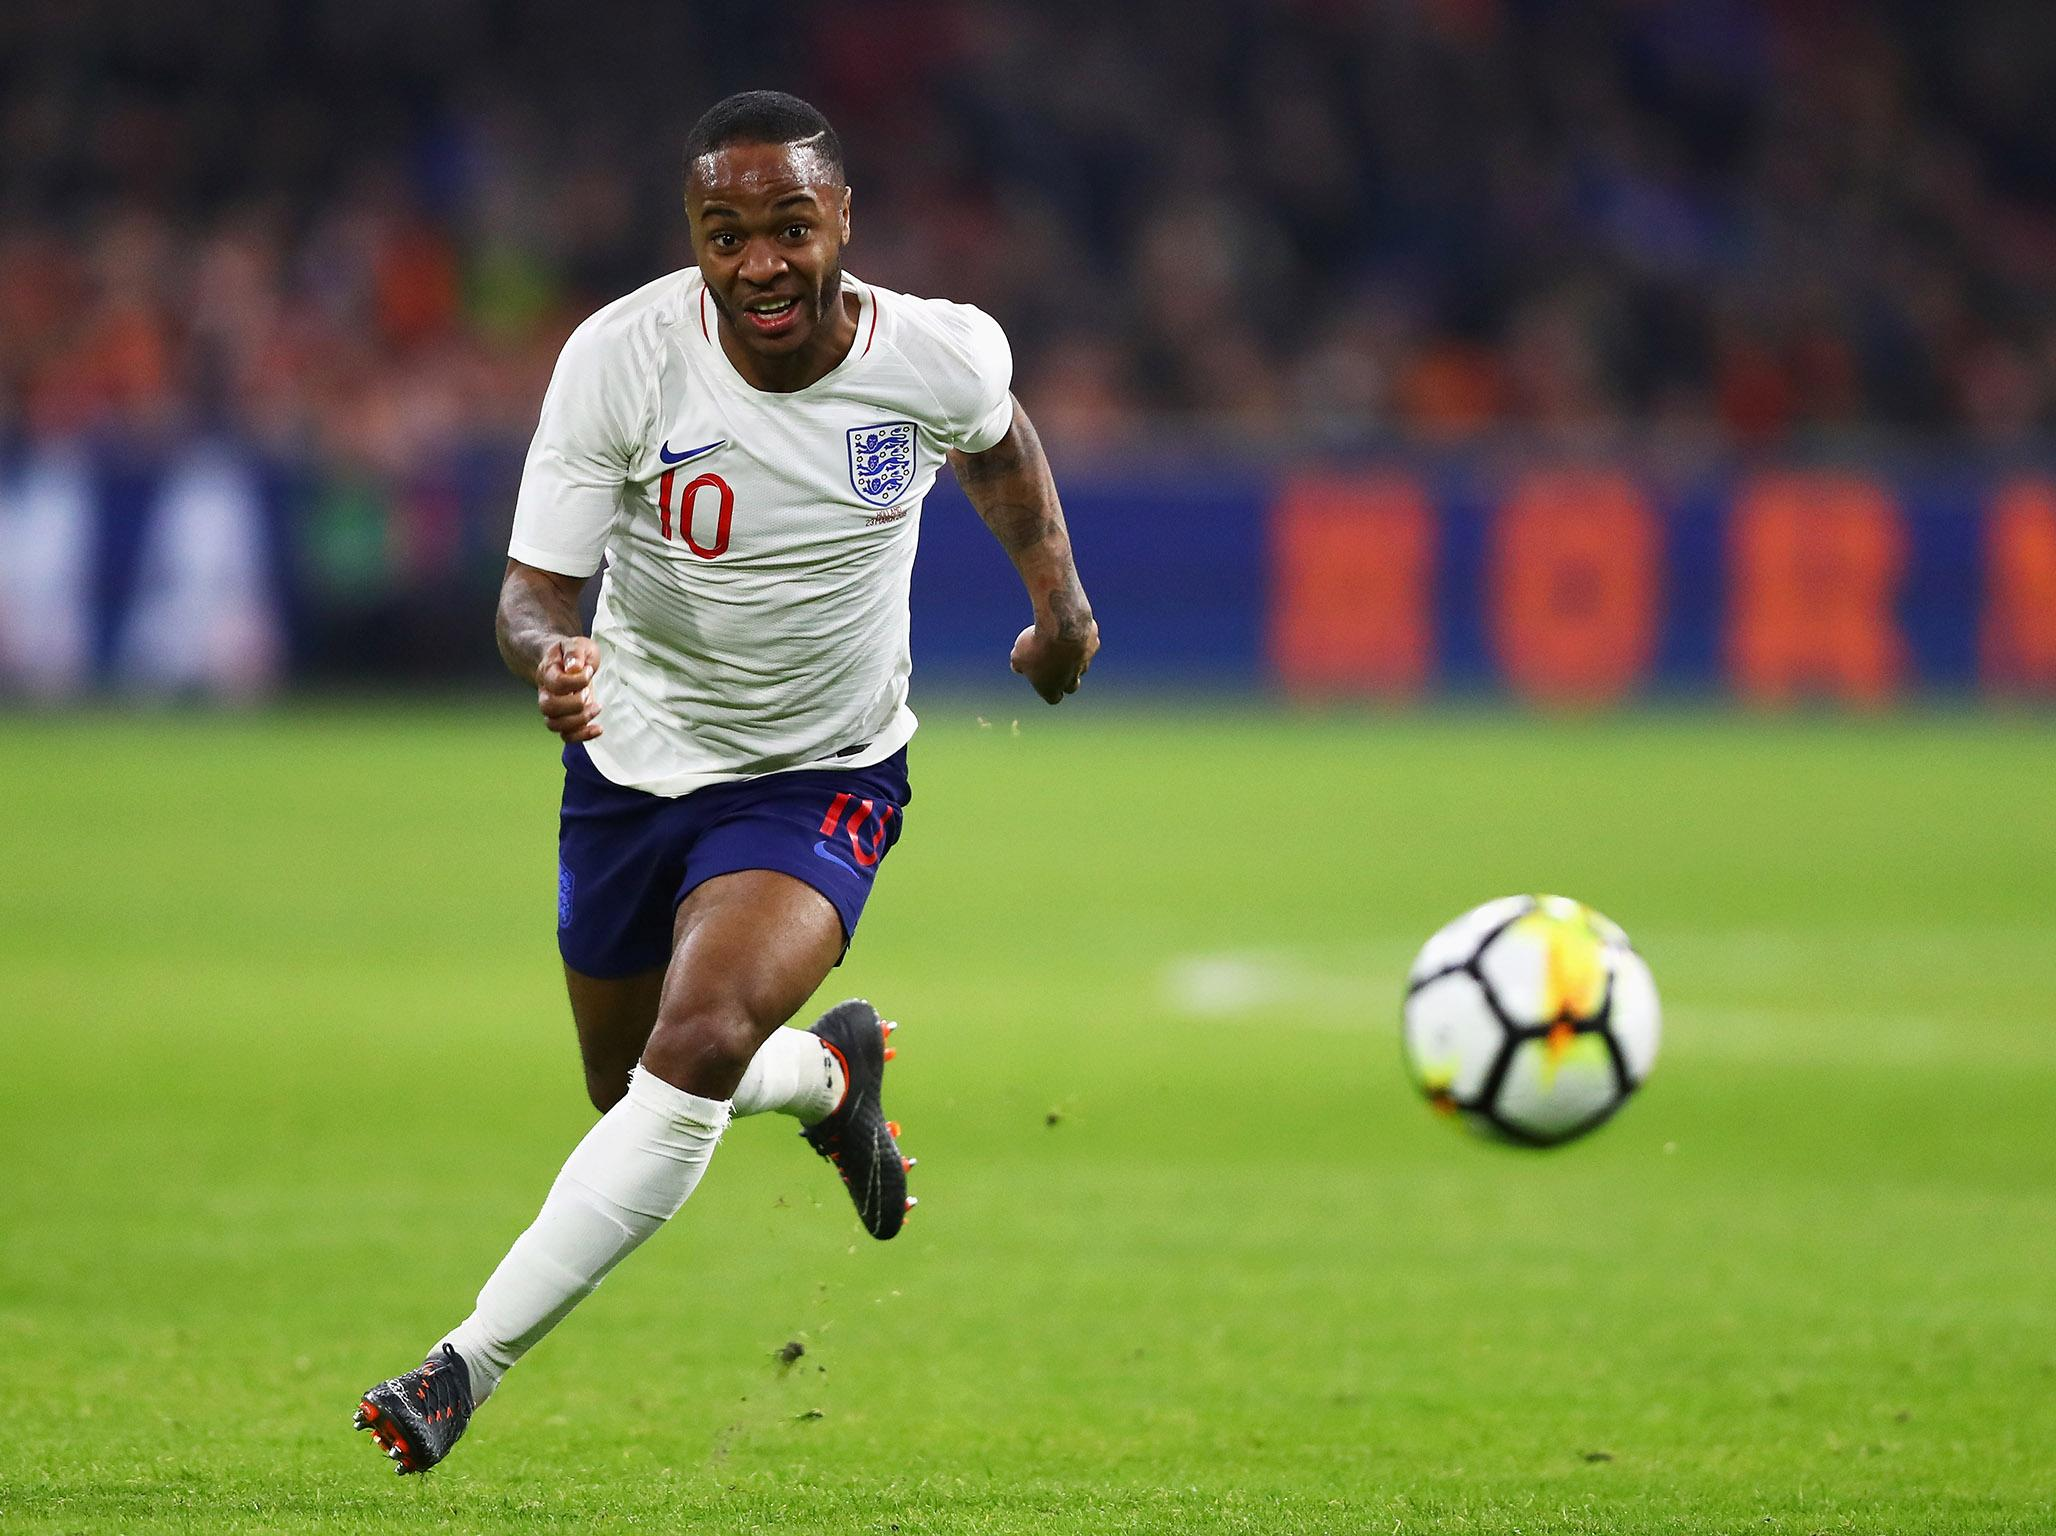 How Pep Guardiola's coaching has turned Raheem Sterling into one of England's leading lights